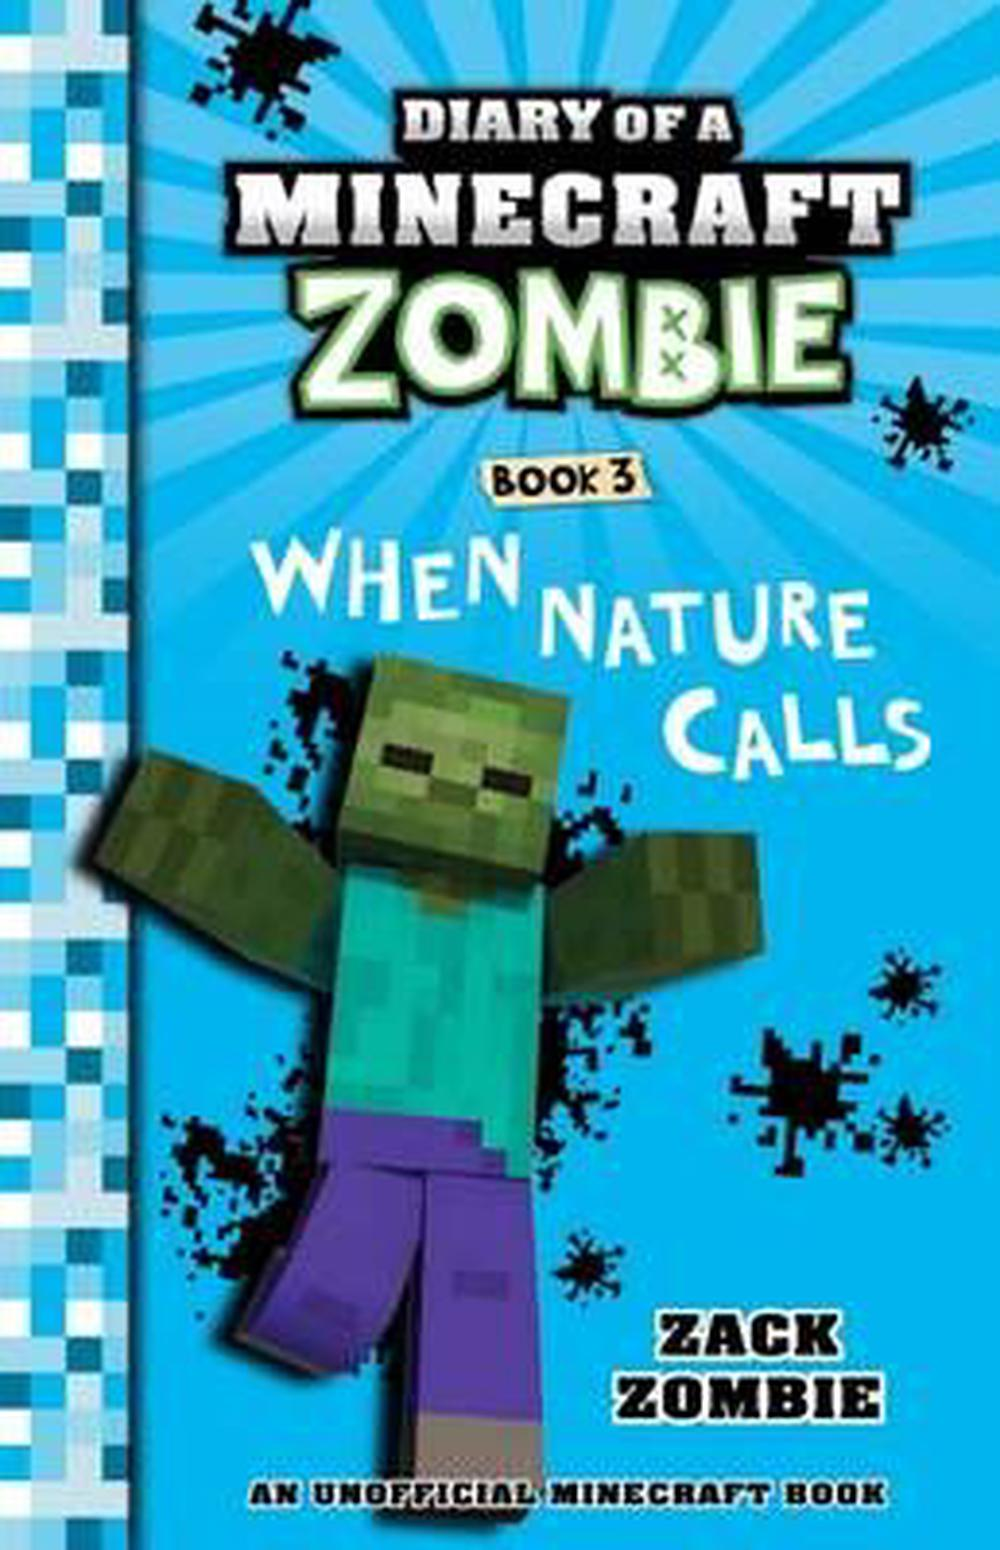 Diary of a Minecraft Zombie#3 When Nature Calls